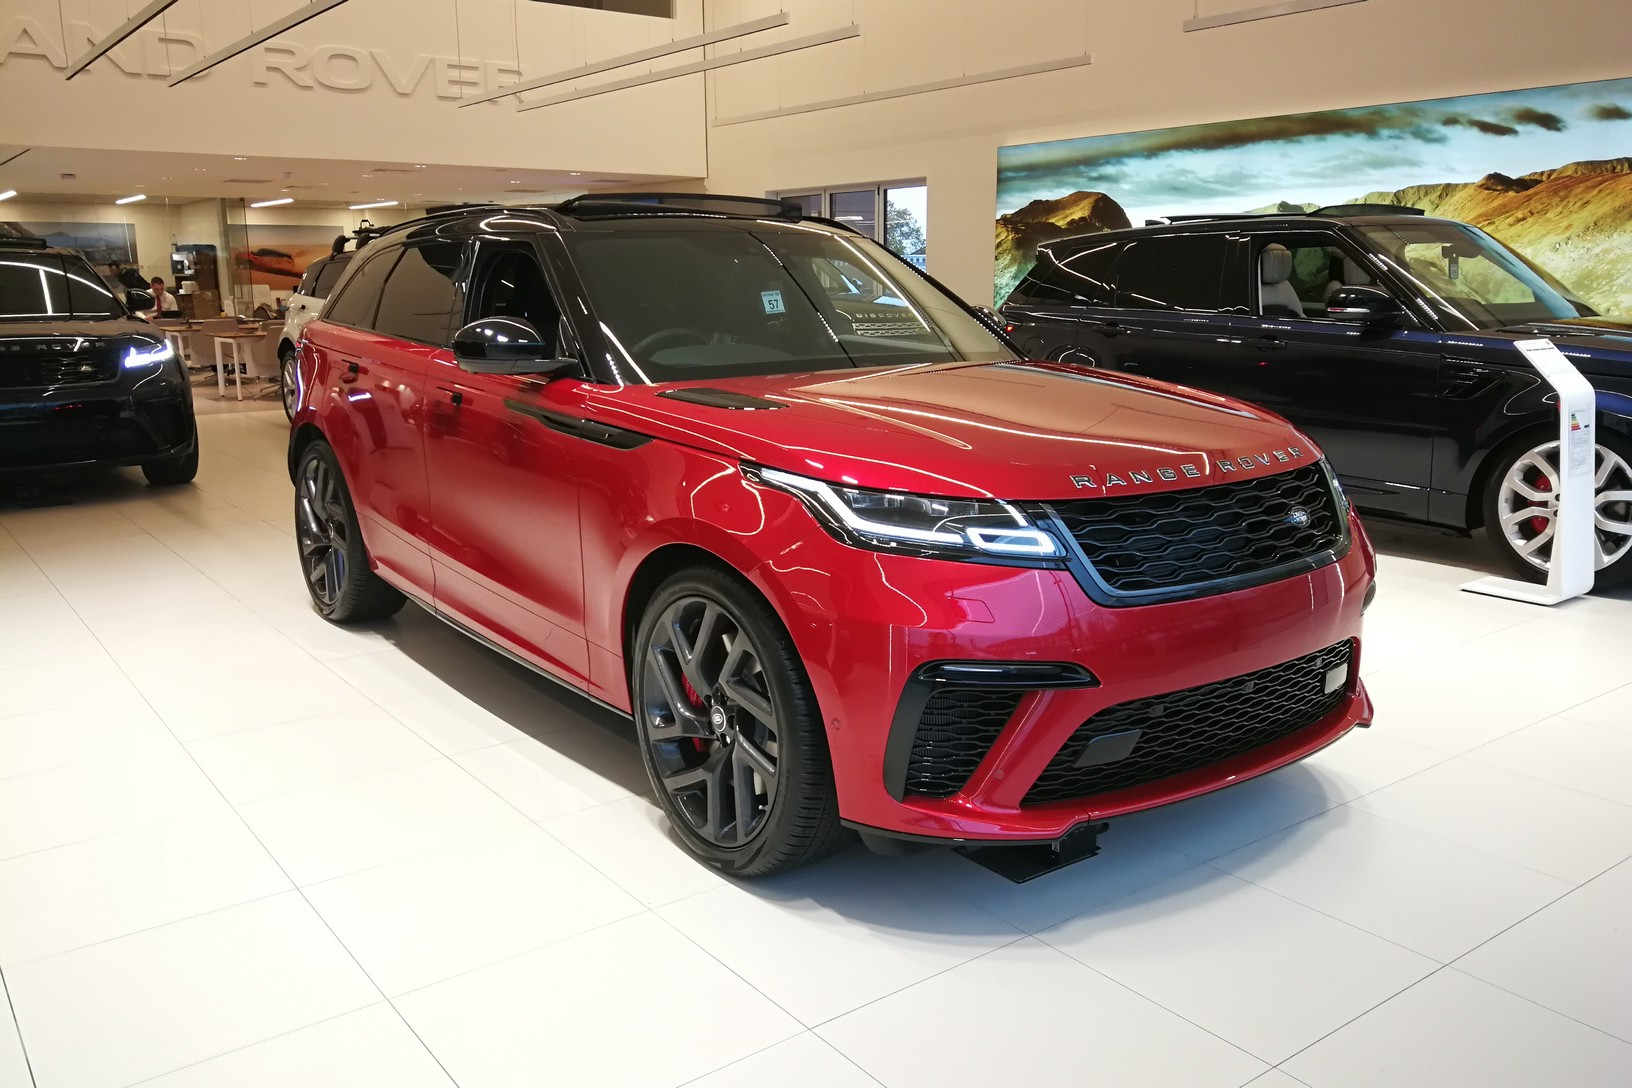 Land Rover Range Rover Velar 5.0 P550 SVAutobiography Dynamic Edition 5dr Auto Automatic 4x4 (2019)